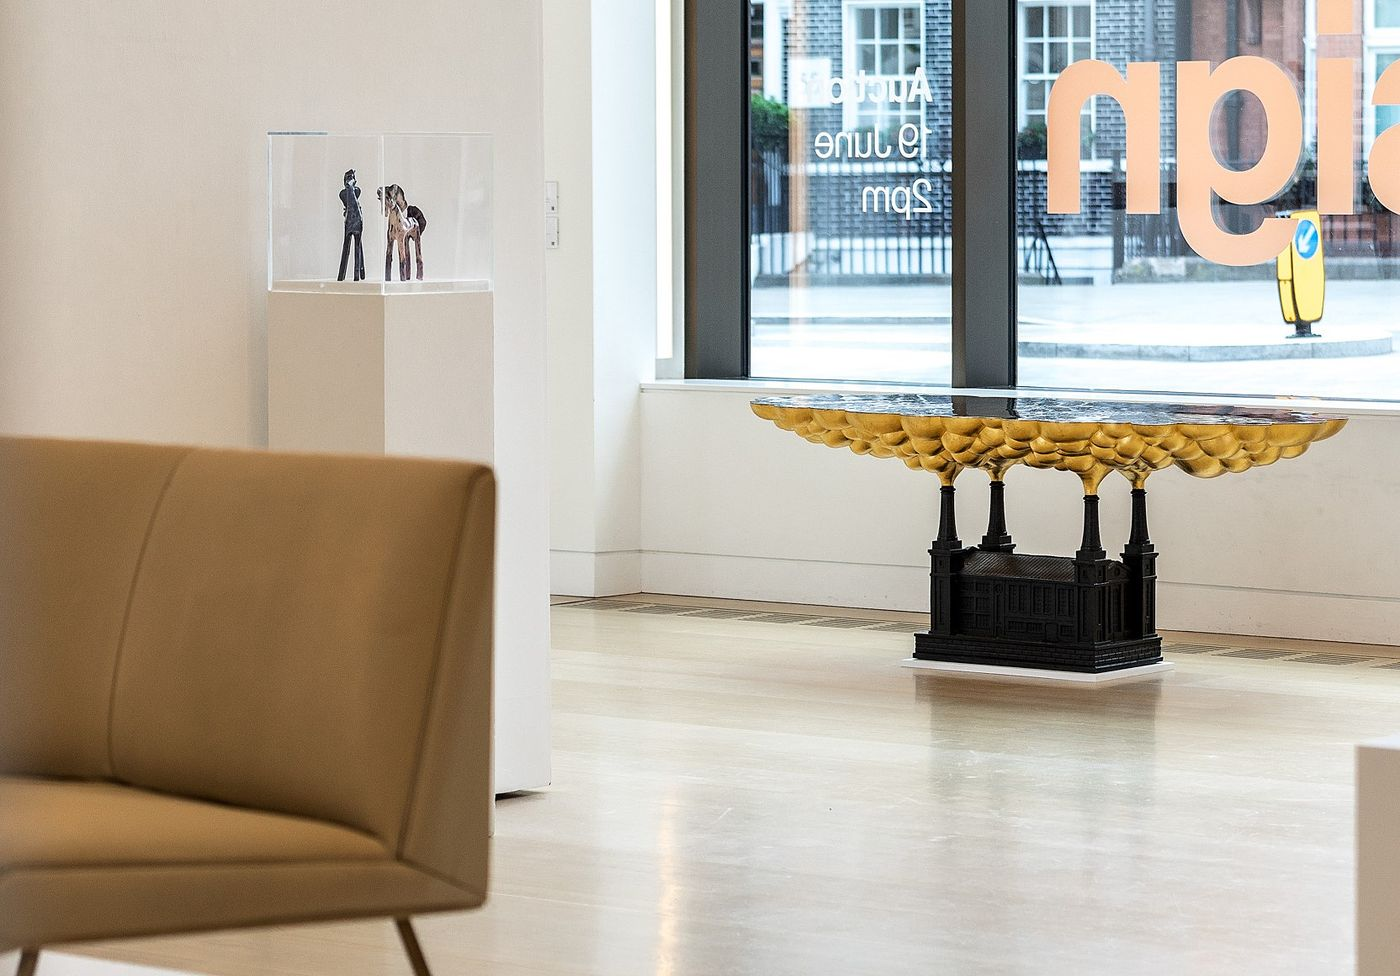 Tour our Design sale in this virtual reality walkthrough from 30 Berkeley Square. On view: Gio Ponti, Fontana Arte, Max Ingrand, Claude Lalanne and more.